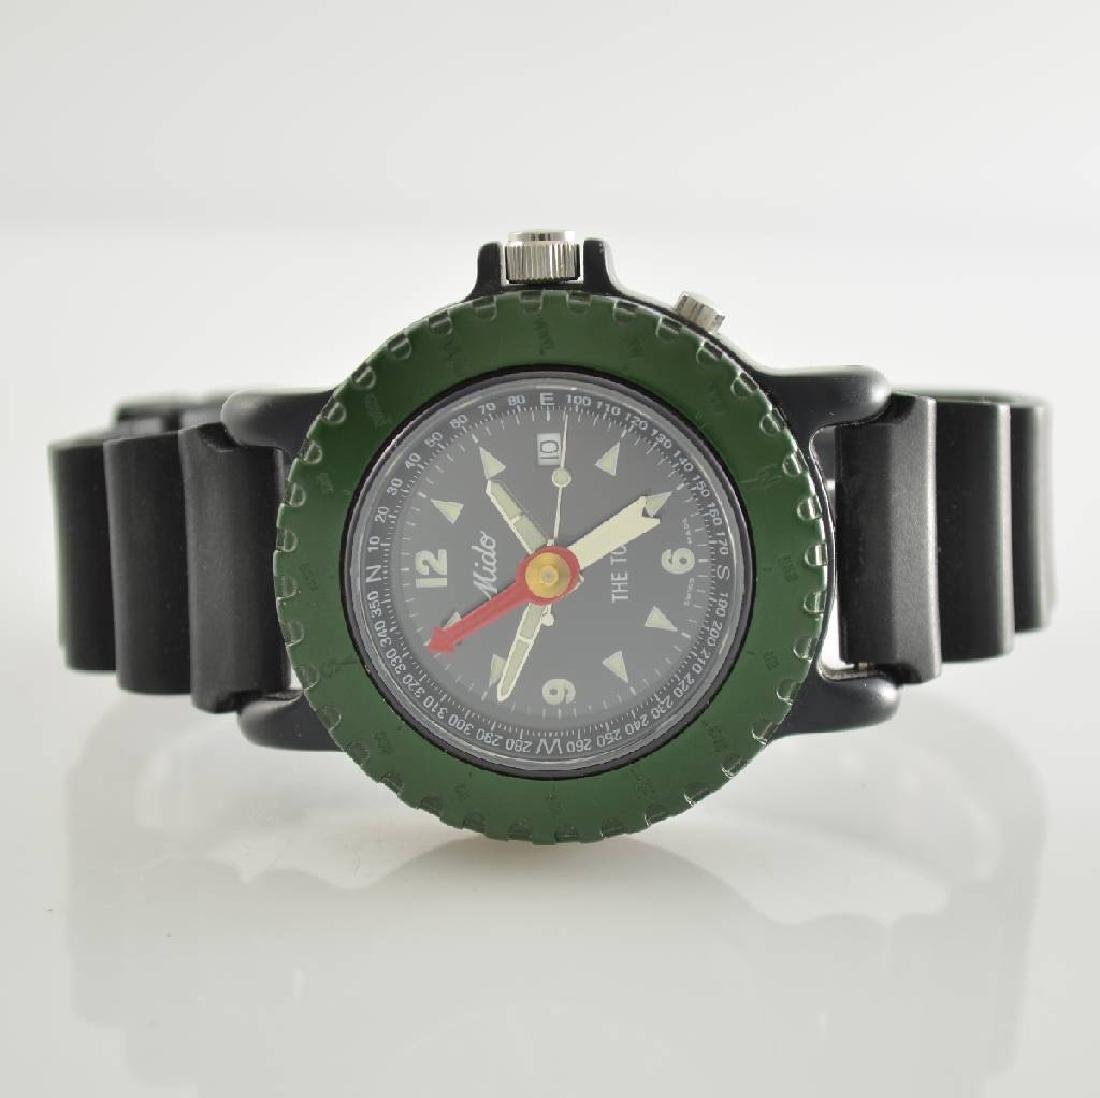 MIDO rare gents wristwatch The Tool